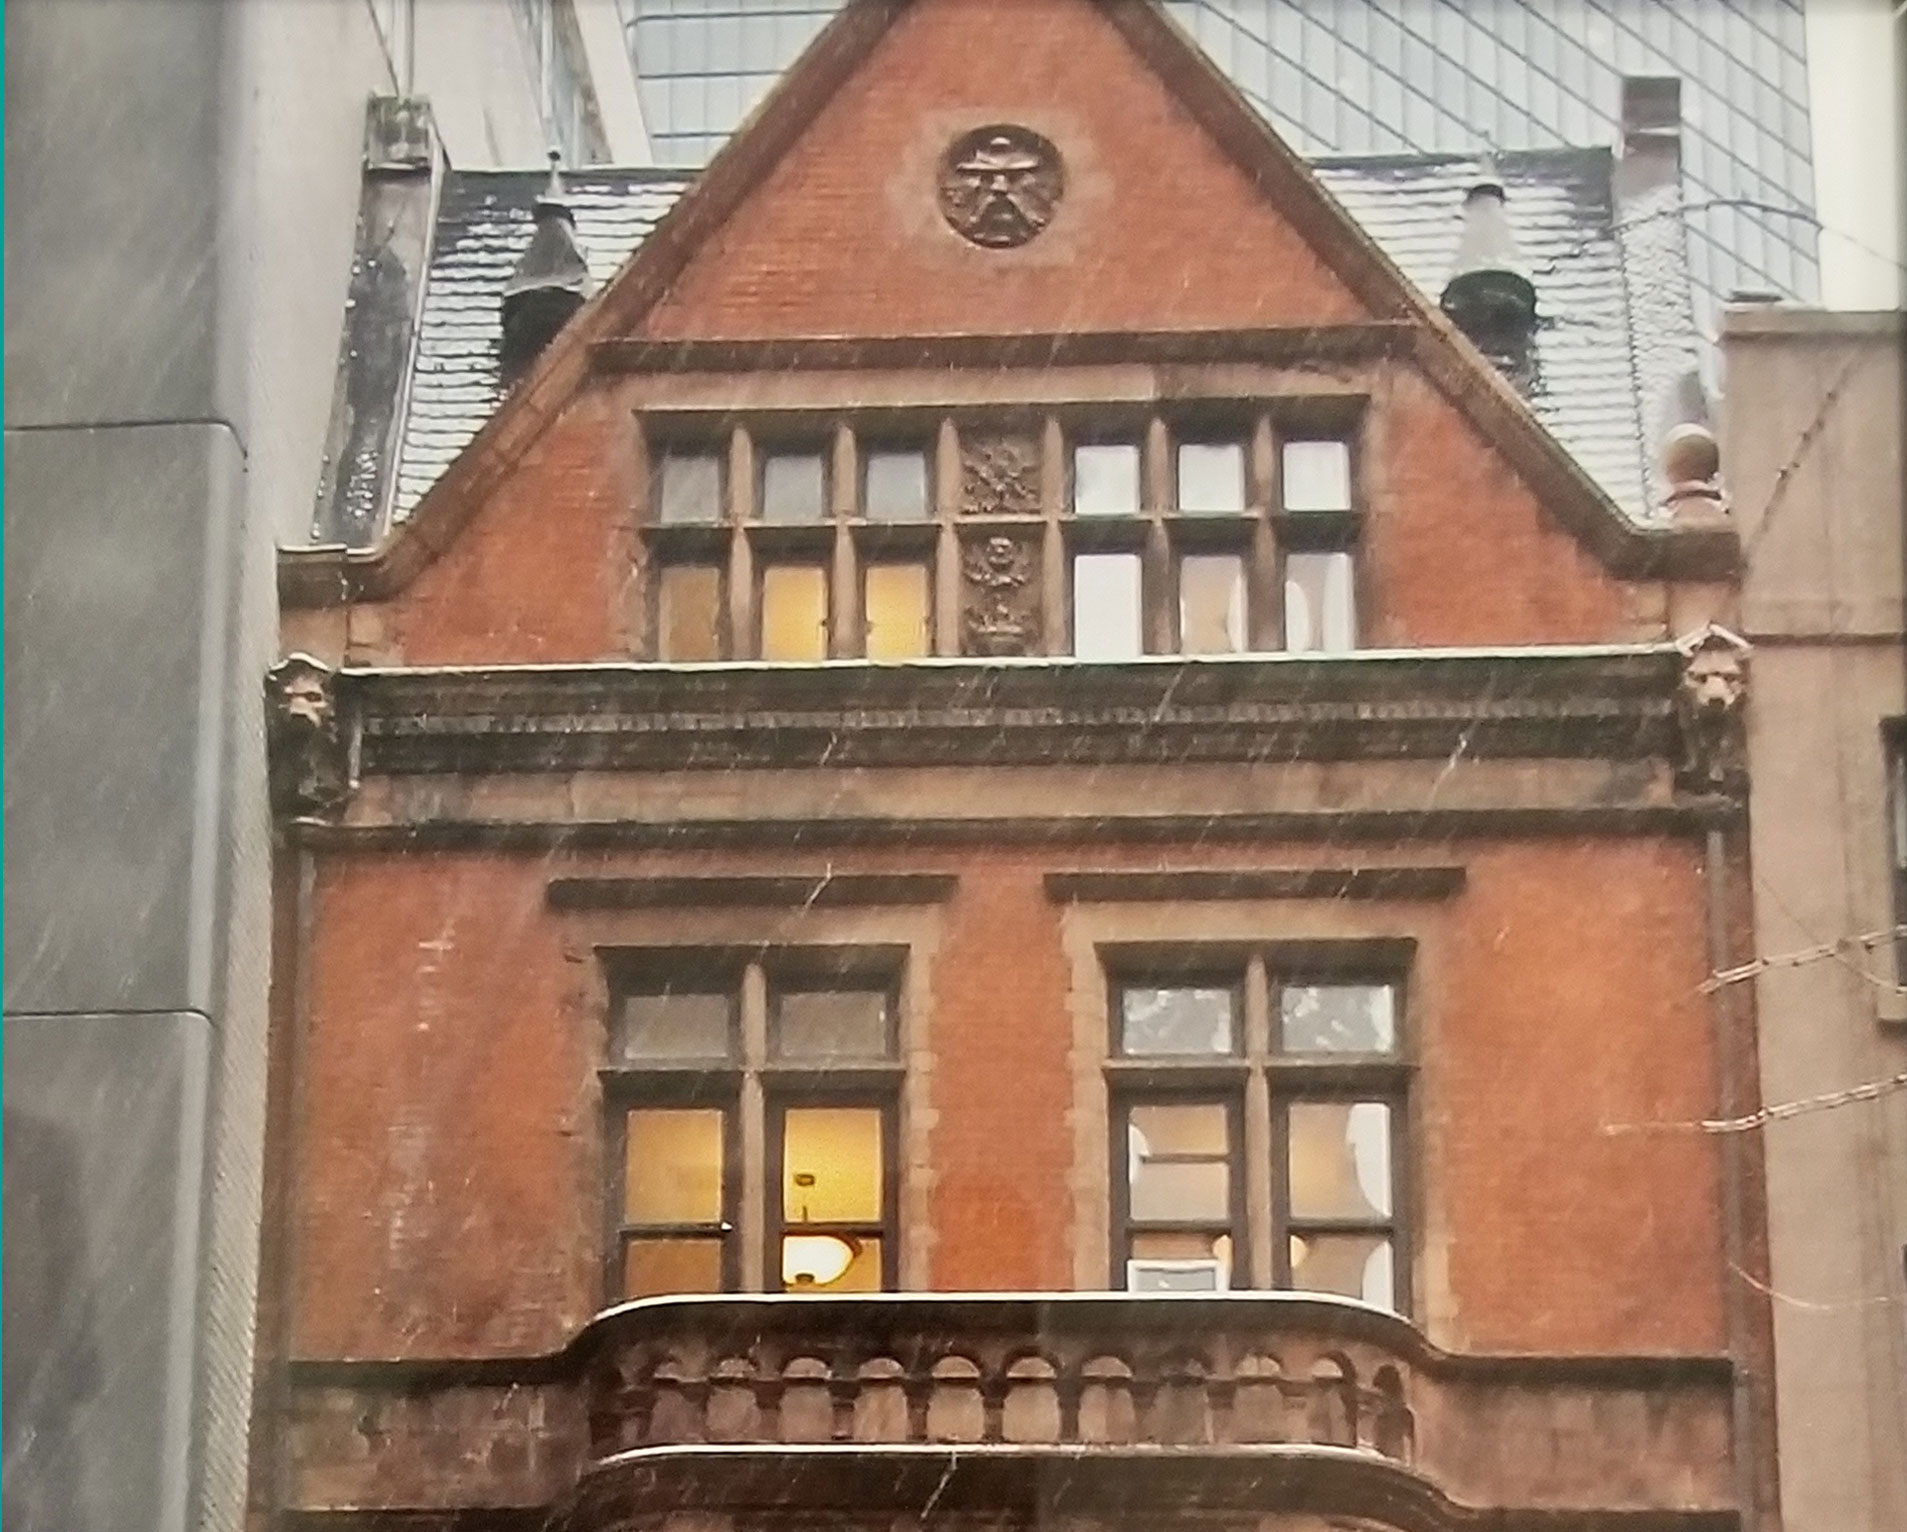 Building Facade cropped